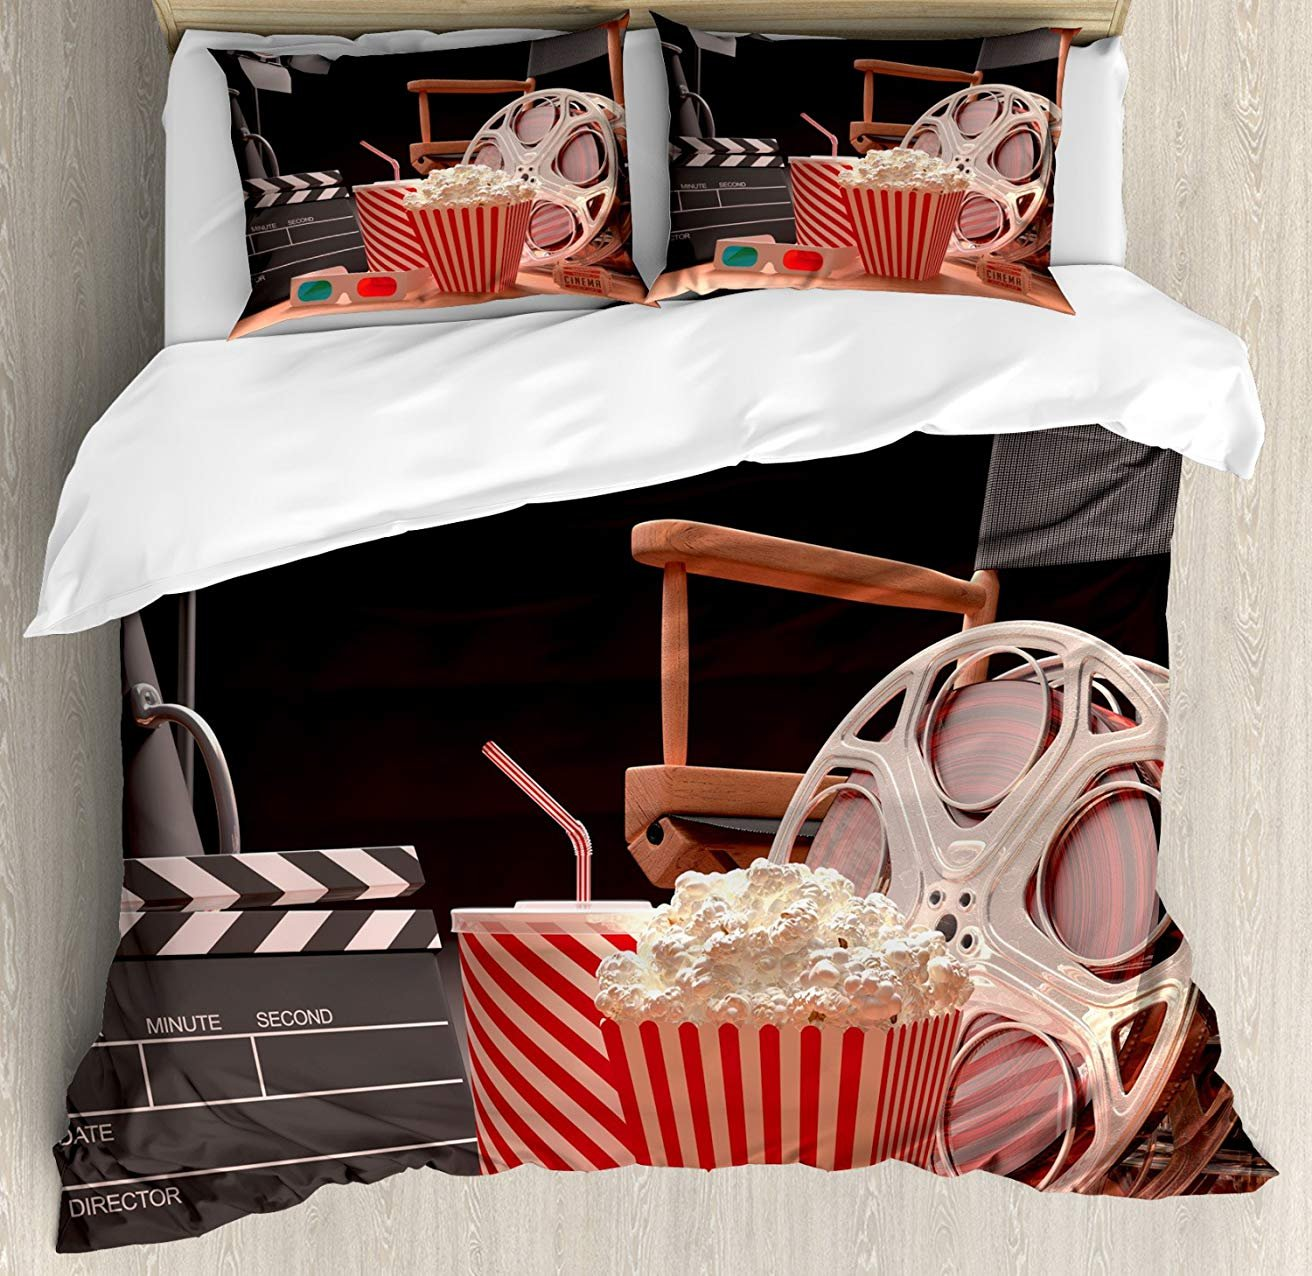 Big buy store Movie Theater Duvet Cover Set, Objects of the Film Industry Hollywood Motion Picture Cinematography Concept, Decorative 4 Piece Bedding Set with 2 Pillow Covers, Multicolor(Full)